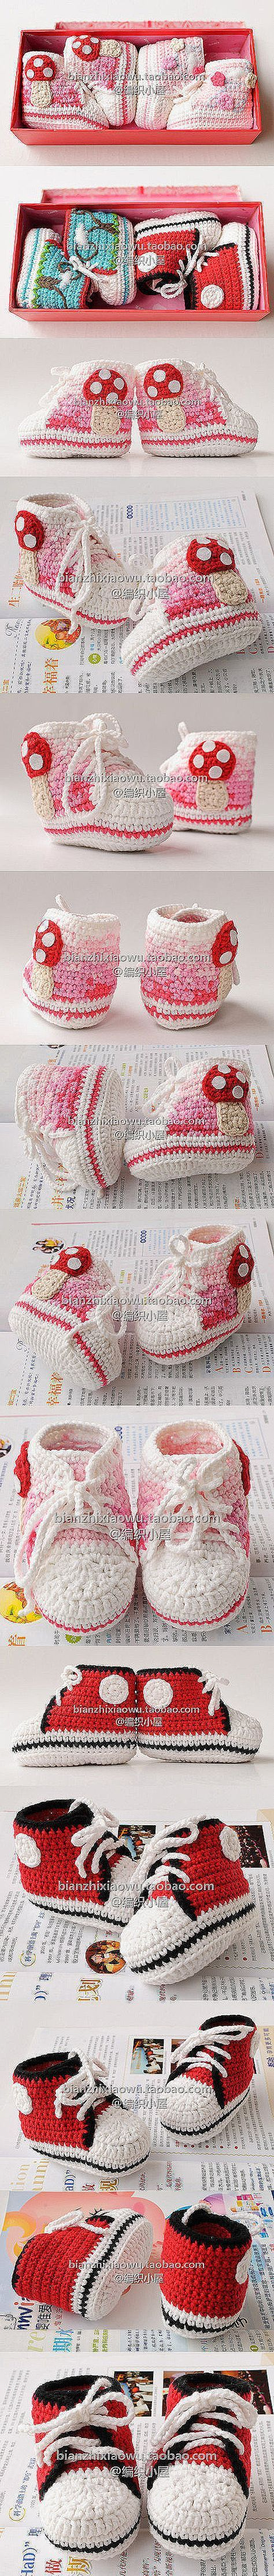 Outlook.com - dtbrns57@hotmail.com   Babies and toddlers   Pinterest ...